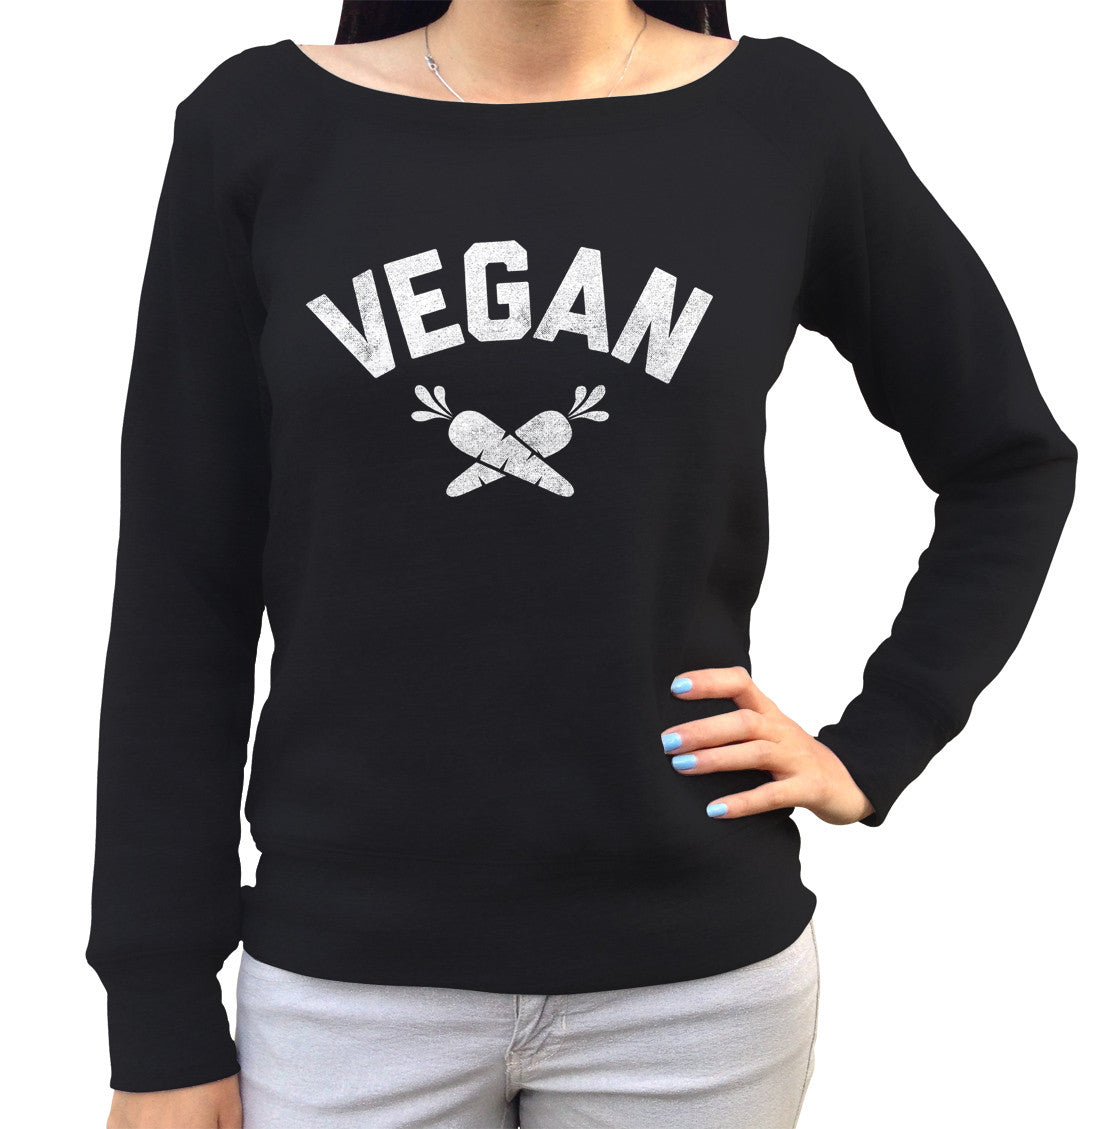 Women's Team Vegan Scoop Neck Fleece